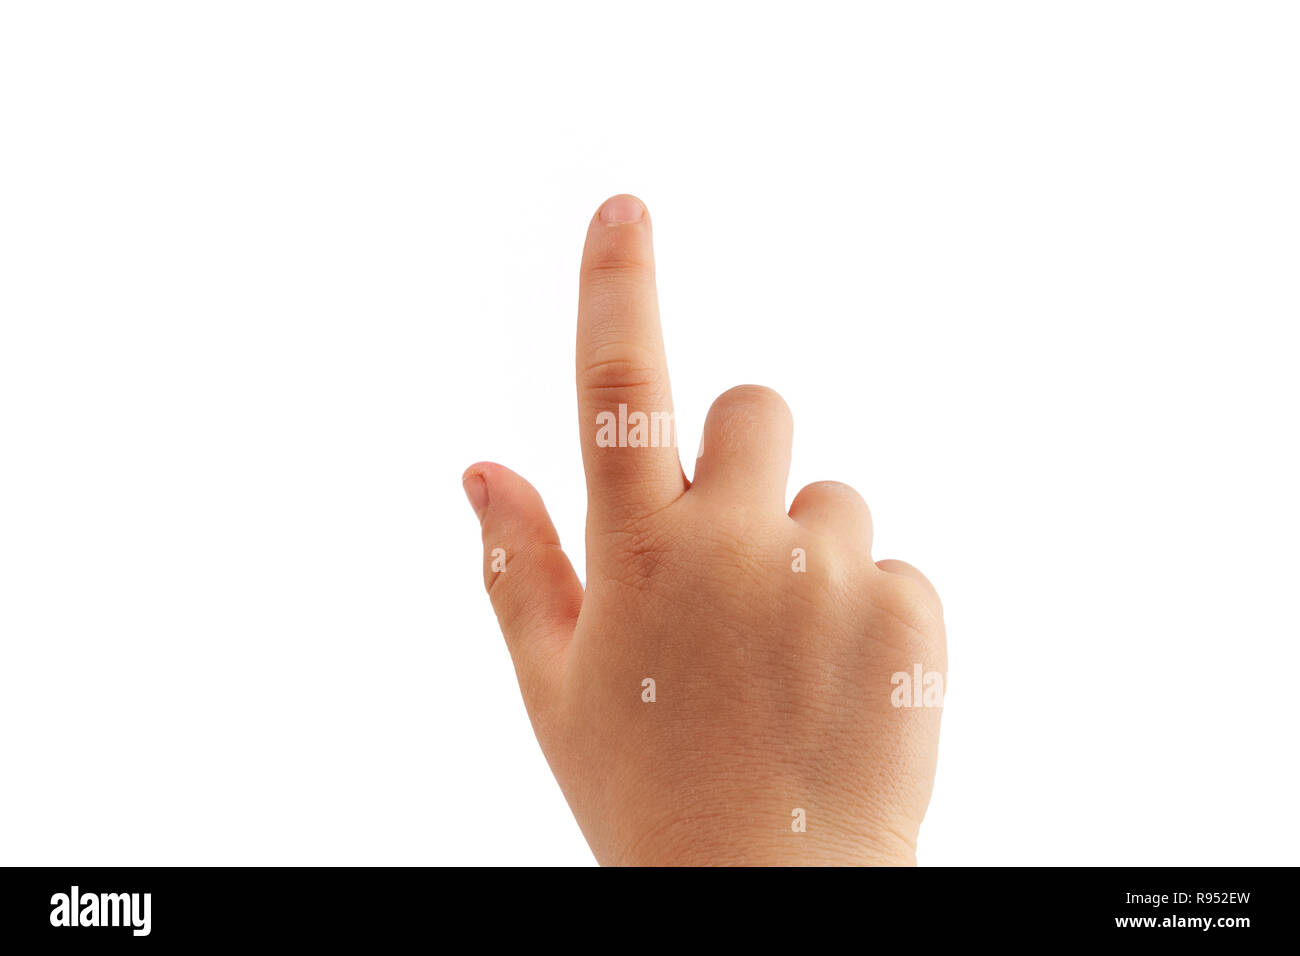 Little girl's right hand tapping with index finger isolated on white background - Stock Image